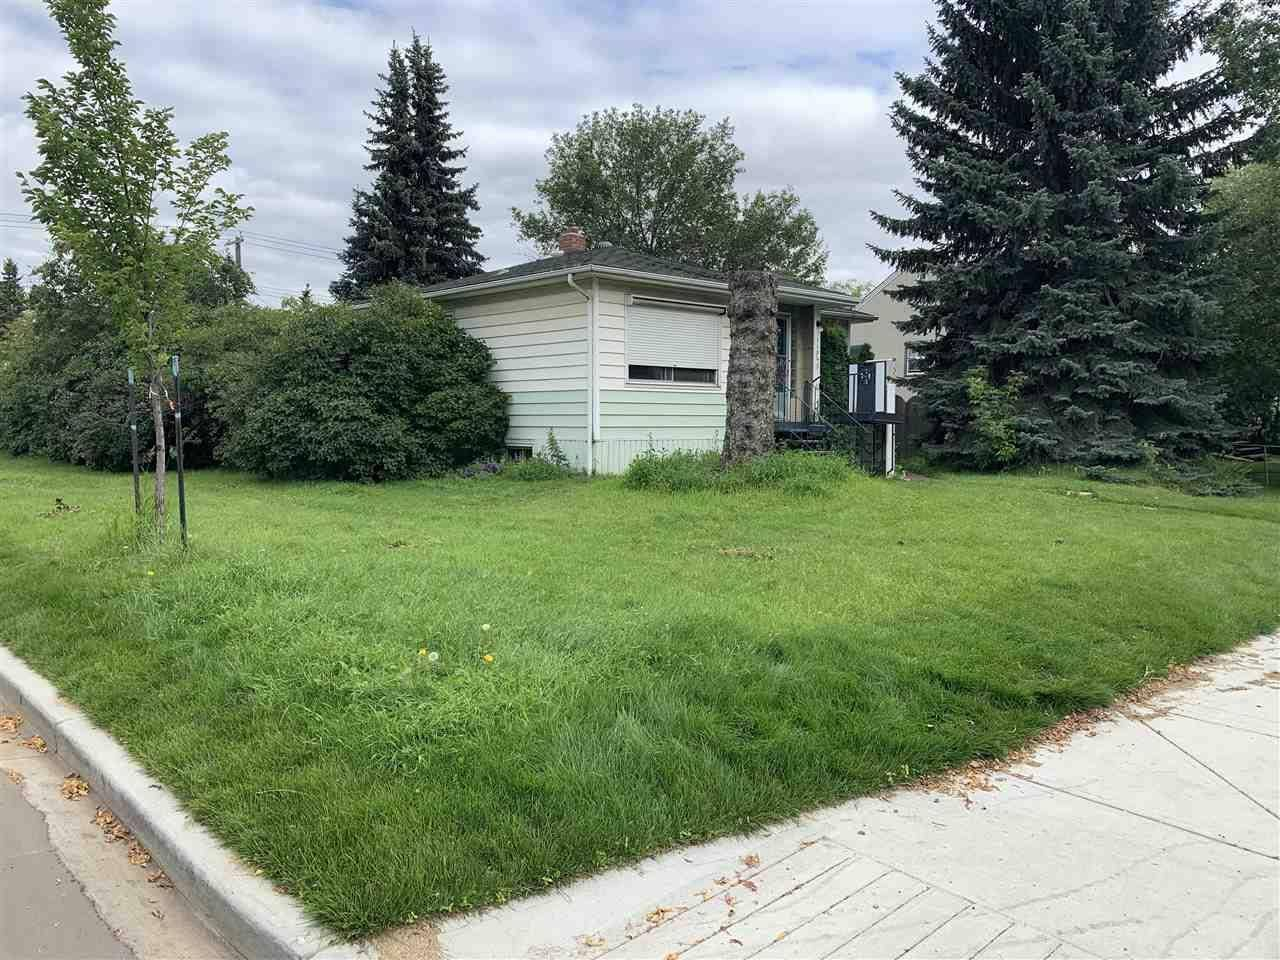 House for sale at 11845 125 St Nw Edmonton Alberta - MLS: E4169161